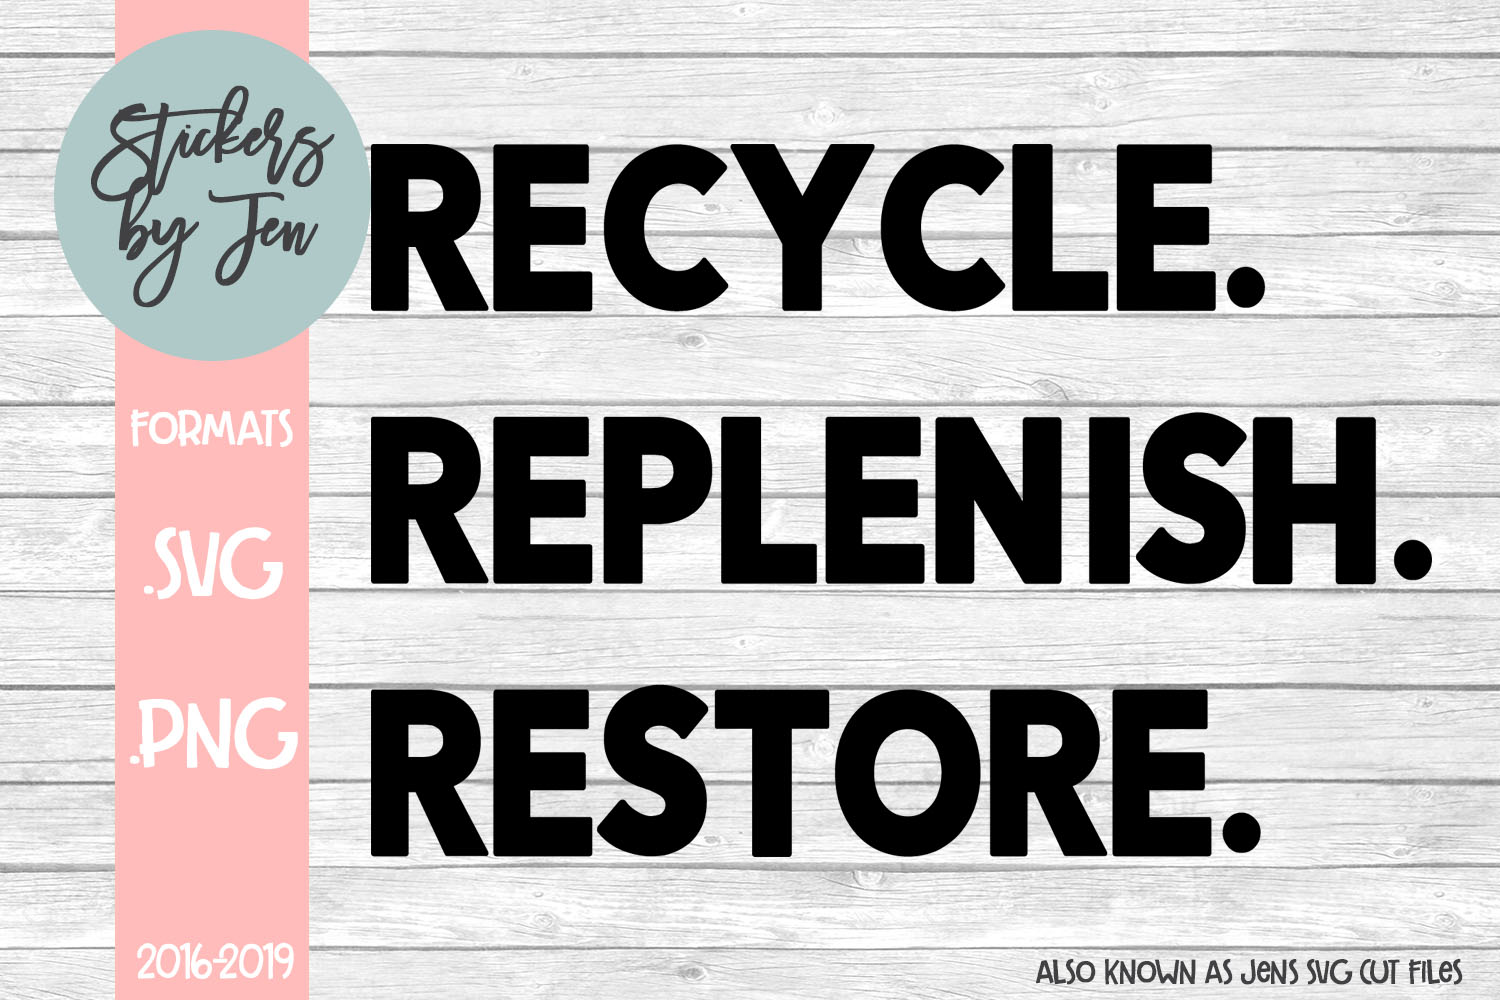 Recycle Replenish Restore Graphic By Jens Svg Cut Files